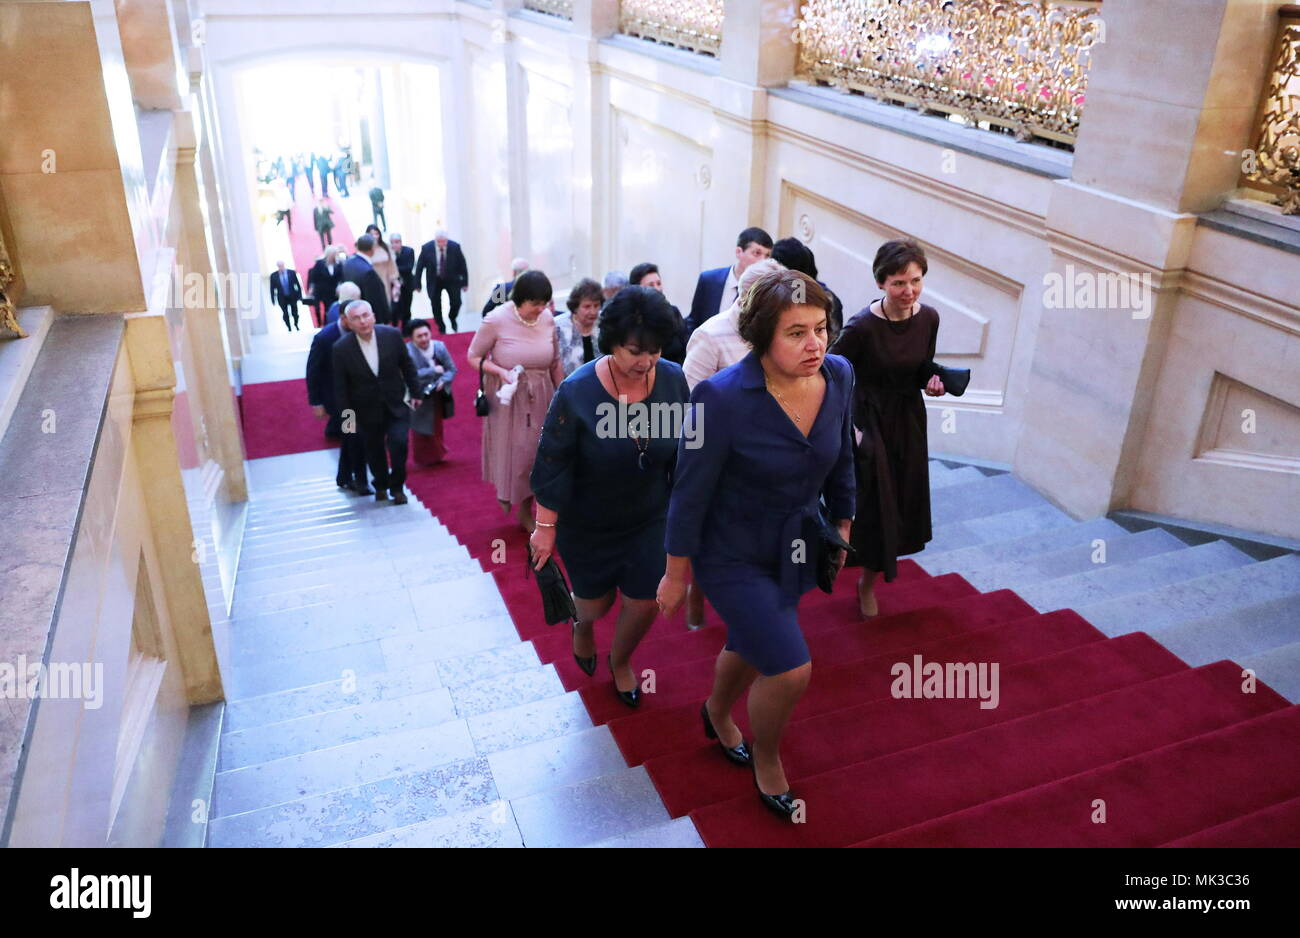 Moscow, Russia. 07th May, 2018. MOSCOW, RUSSIA - MAY 7, 2018: Guests arrive for an inauguration ceremony of Vladimir Putin as President of Russia at the Moscow Kremlin. Mikhail Klimentyev/Russian Presidential Press and Information Office/TASS Credit: ITAR-TASS News Agency/Alamy Live News - Stock Image